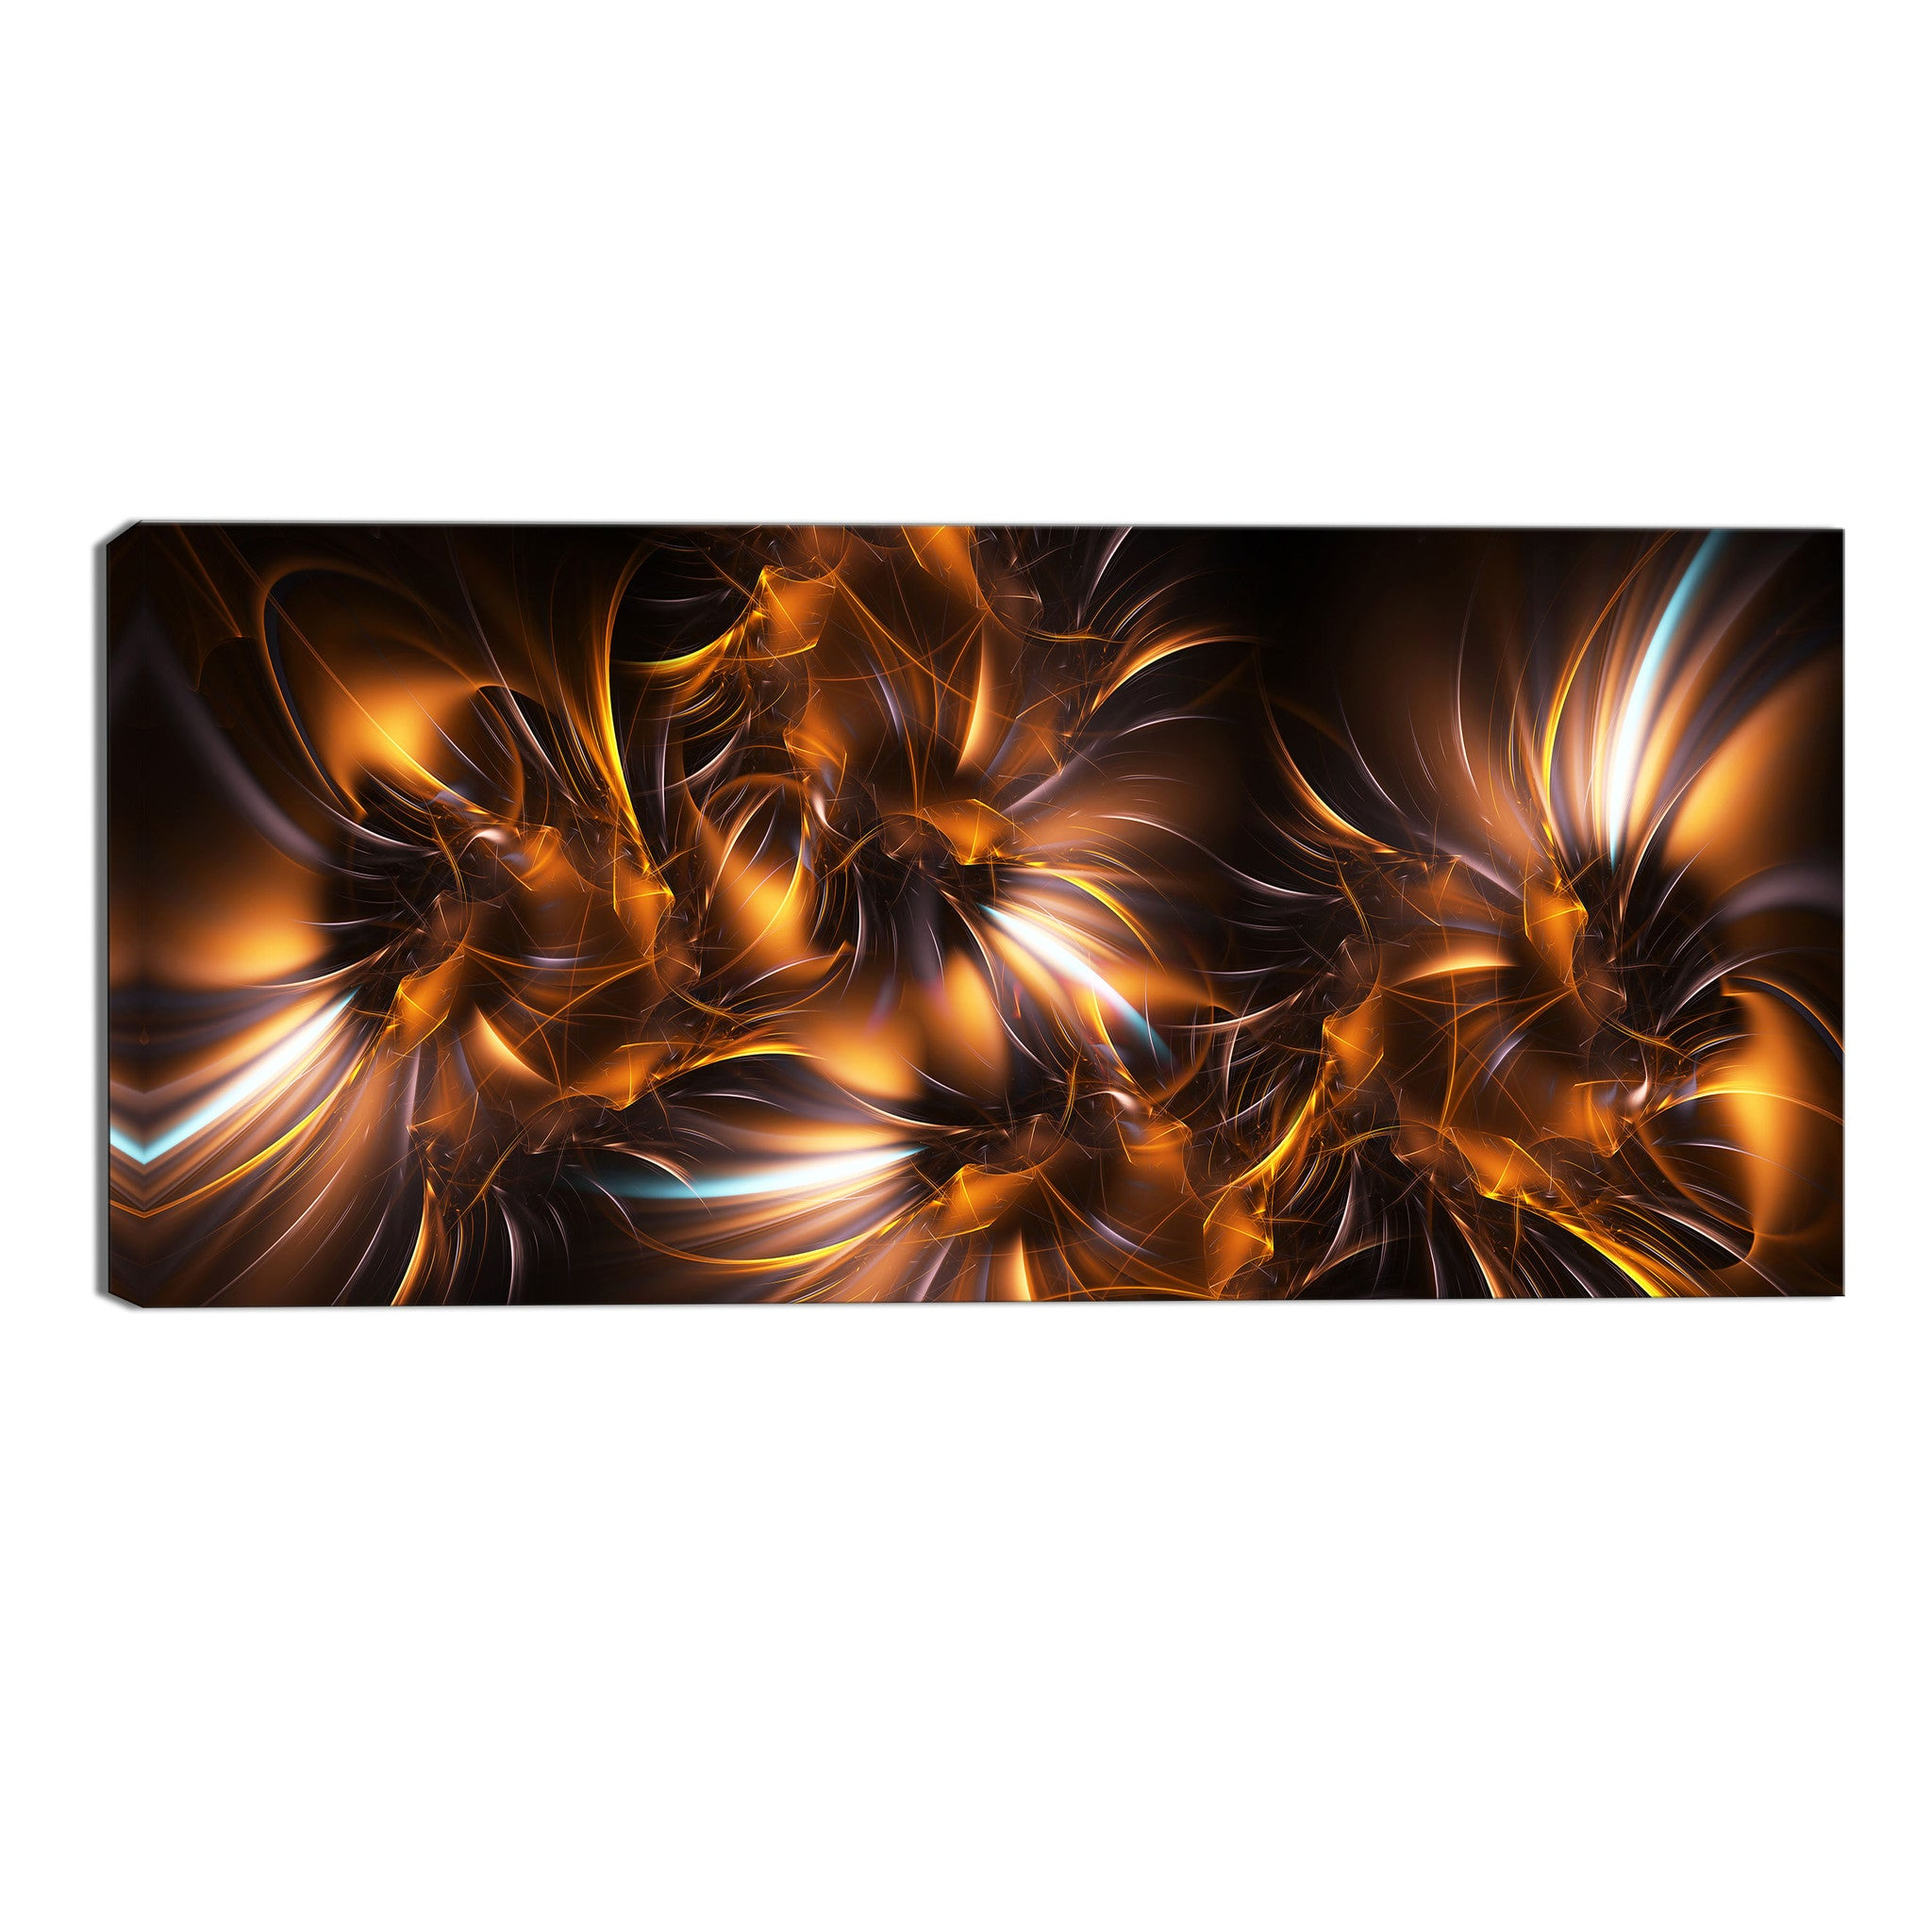 Gold and Silver Fireworks Canvas Abstract Wall Art Print